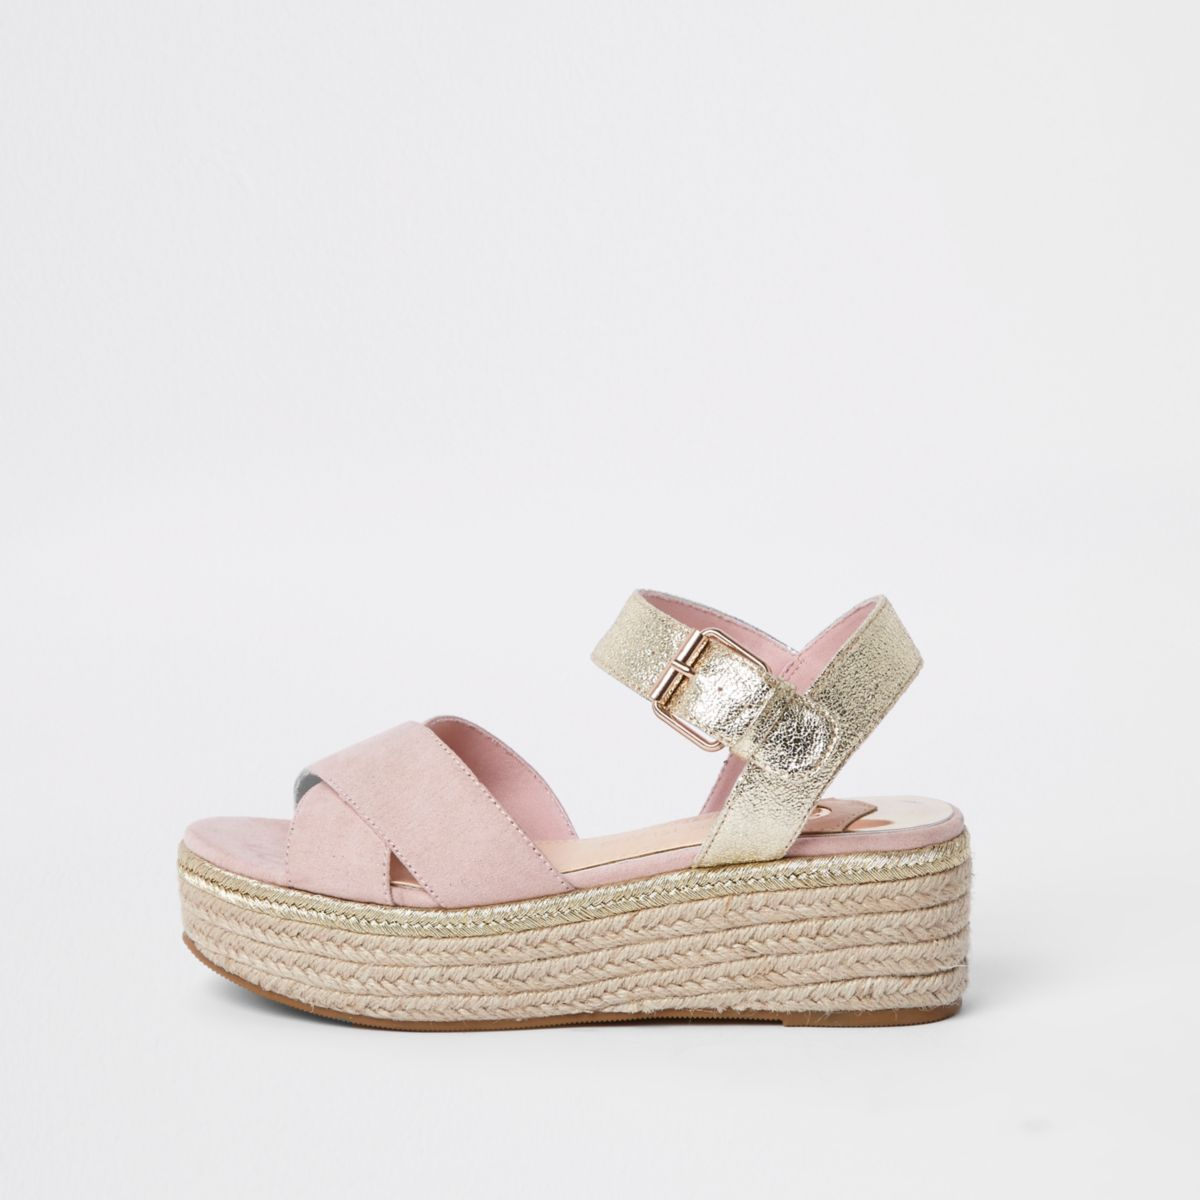 Light pink gold tone espadrille wedge sandals